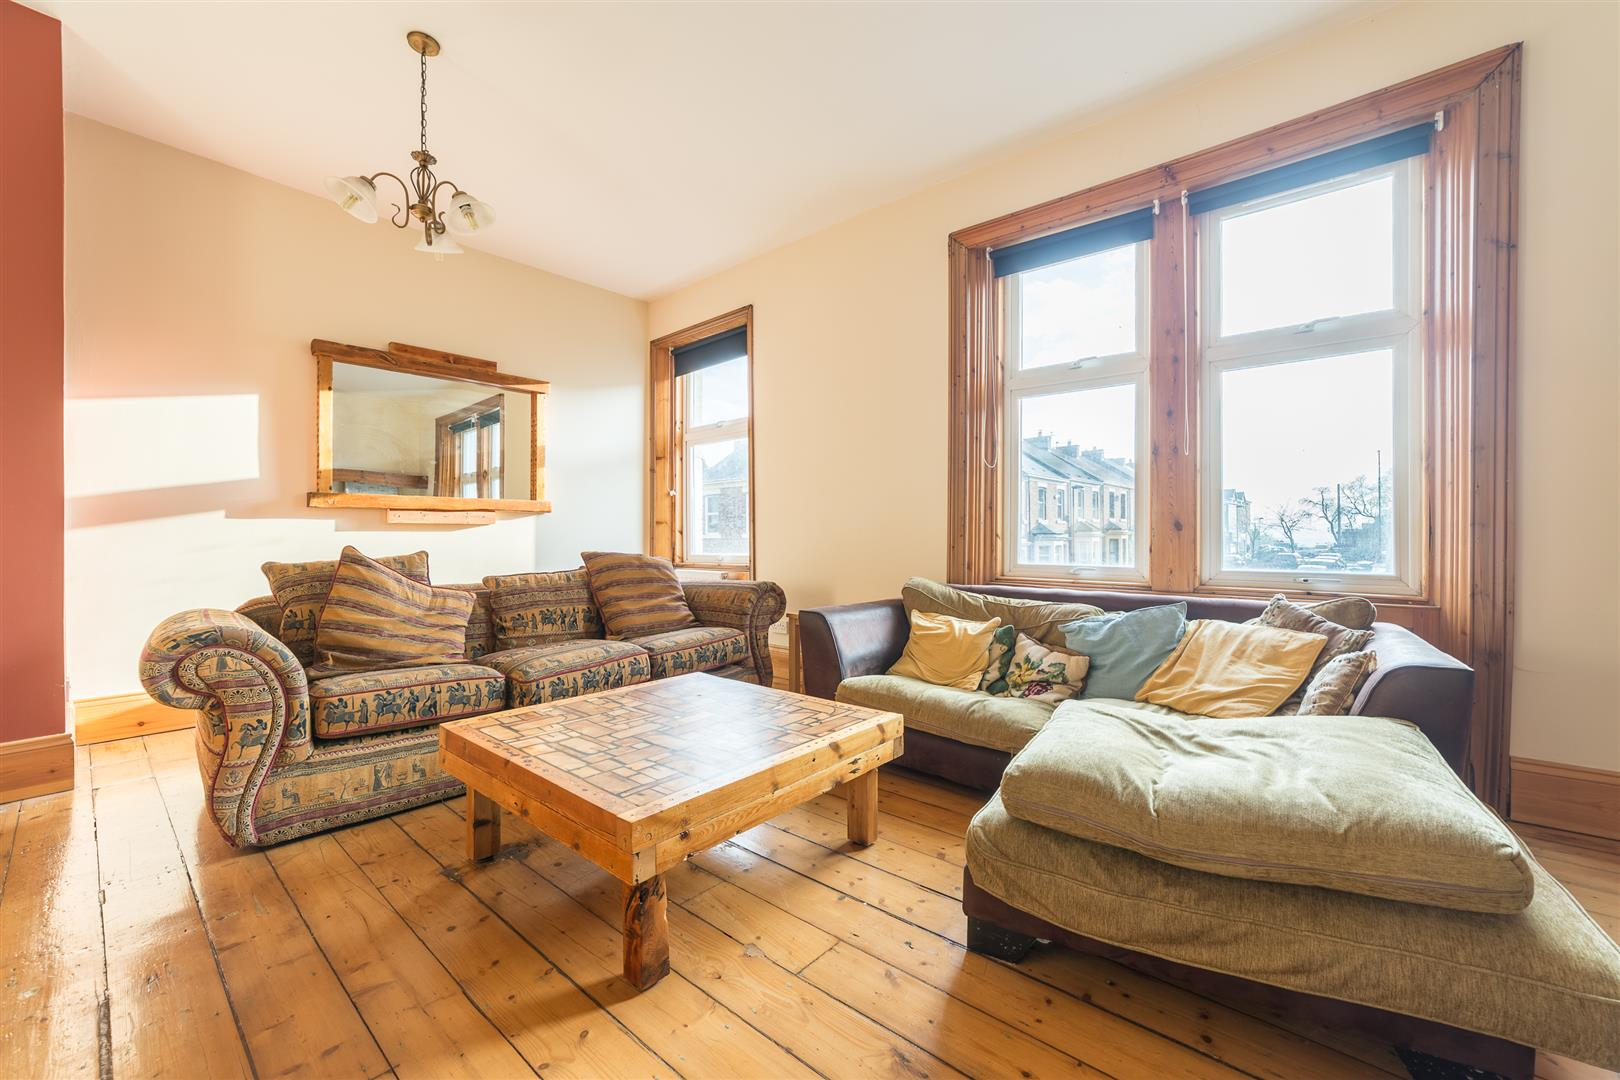 5 bed terraced house to rent in Newcastle Upon Tyne, NE4 5NL  - Property Image 7